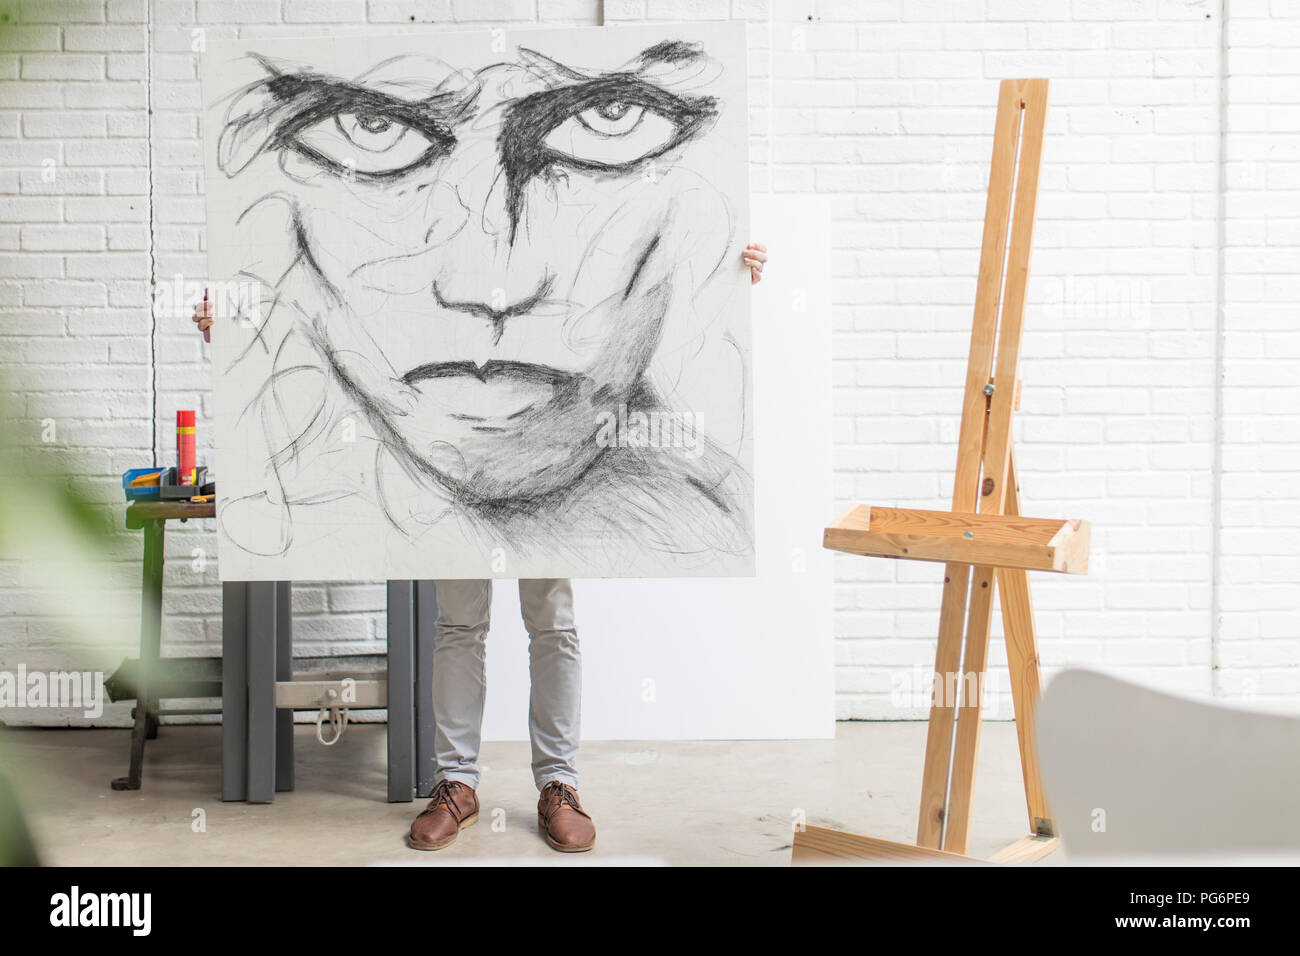 Obscured artist behind canvas holding drawing in studio - Stock Image